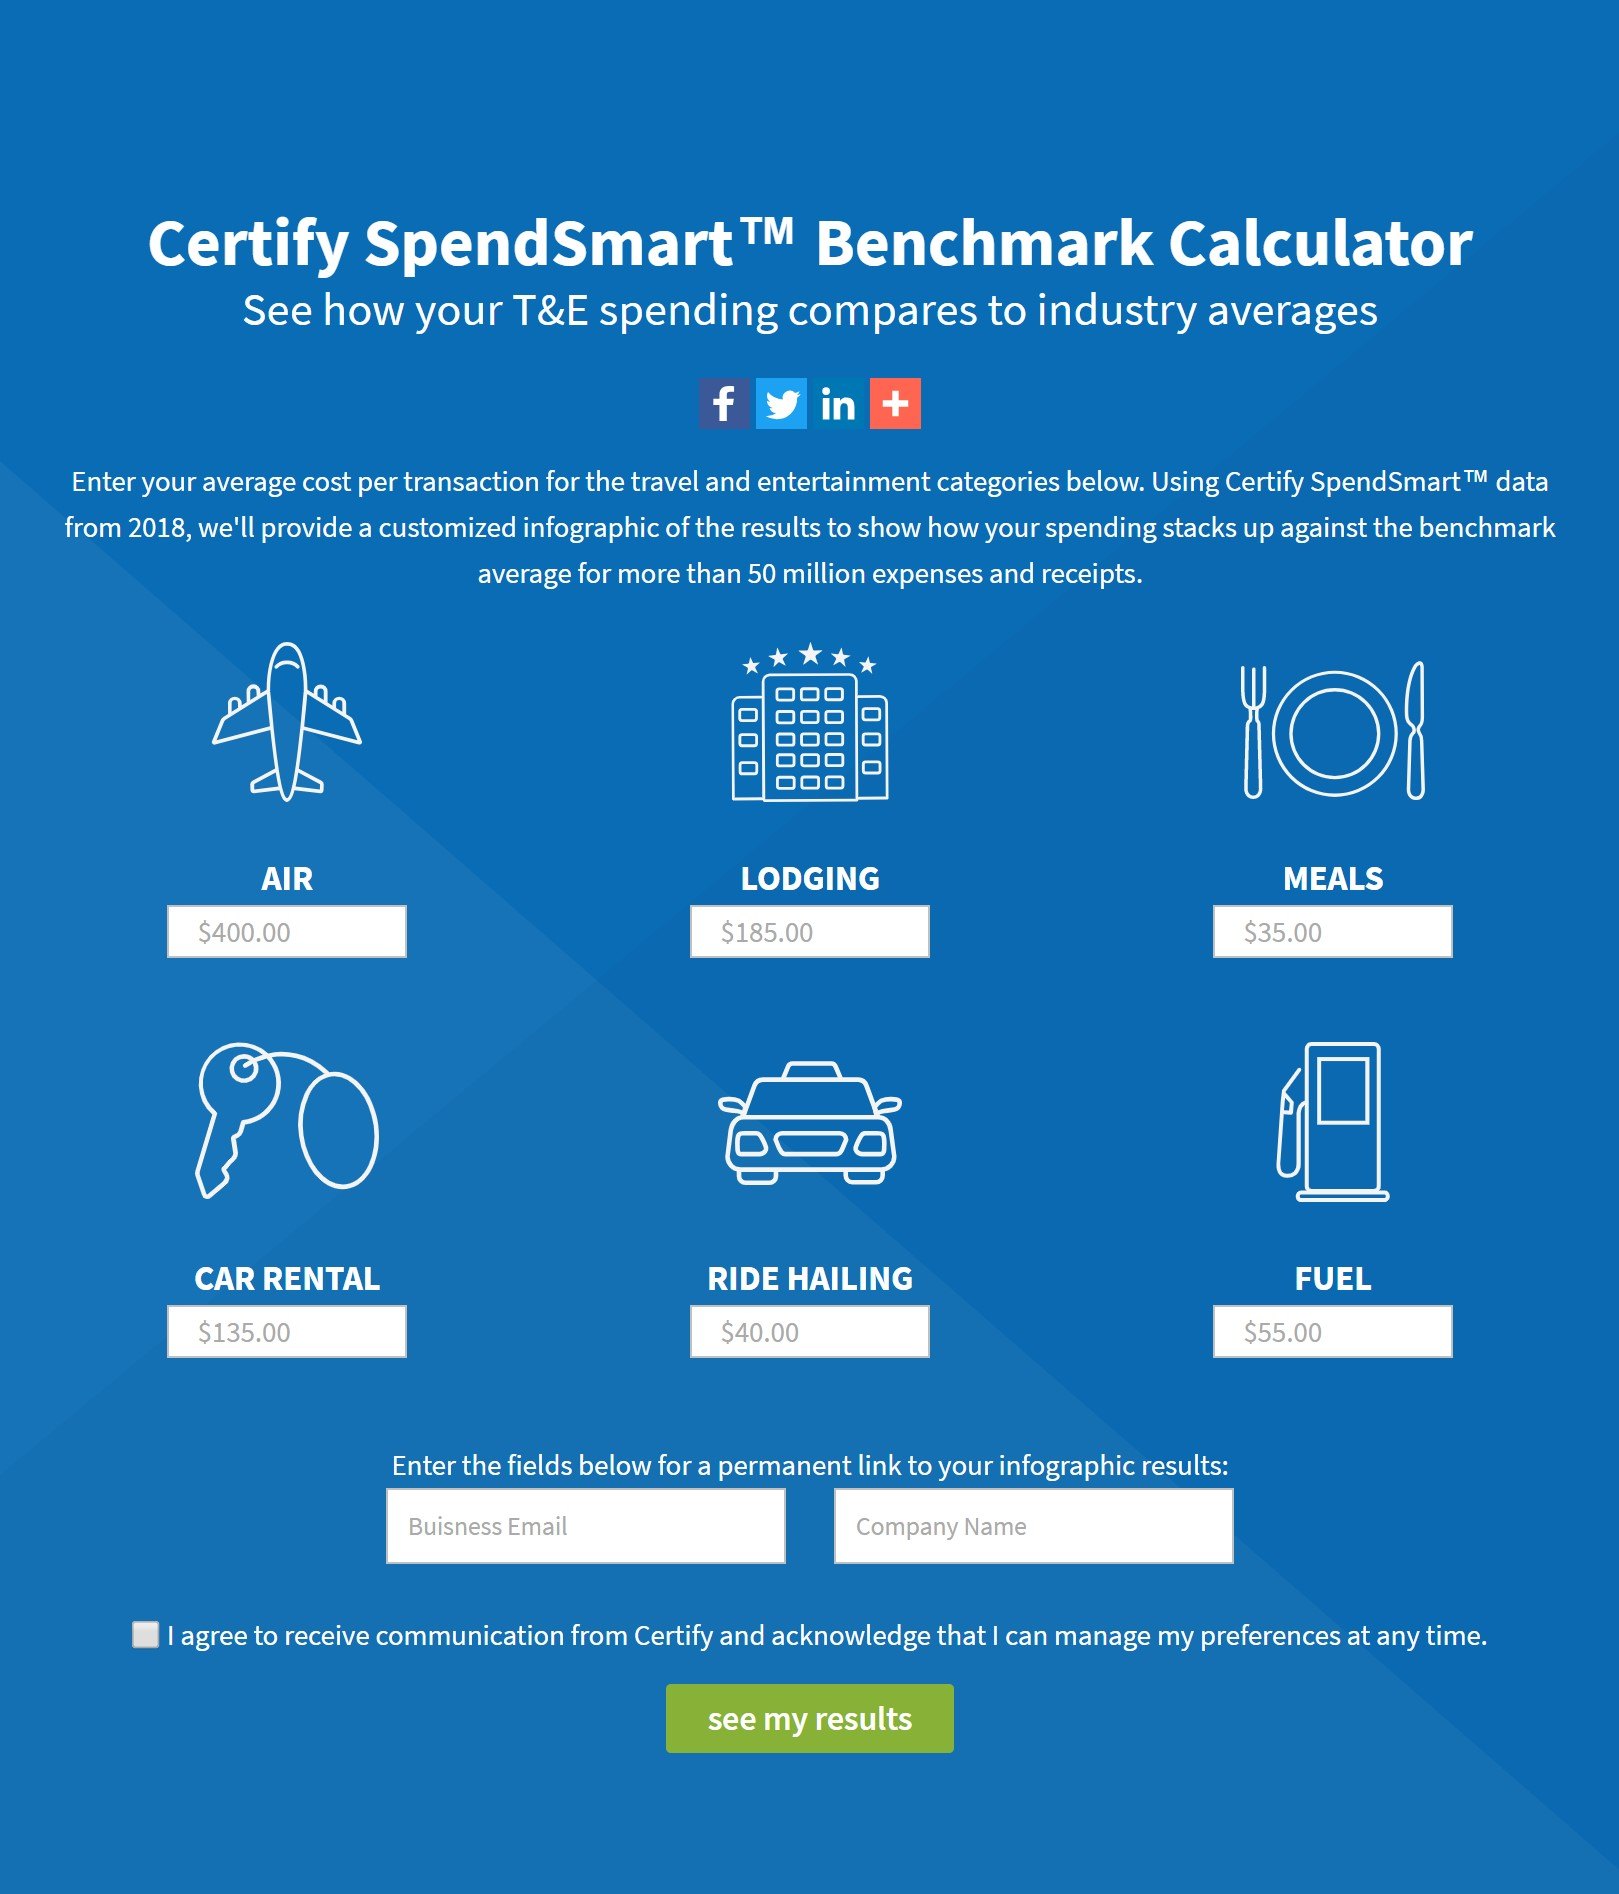 SpendSmart™ Benchmark Calculator